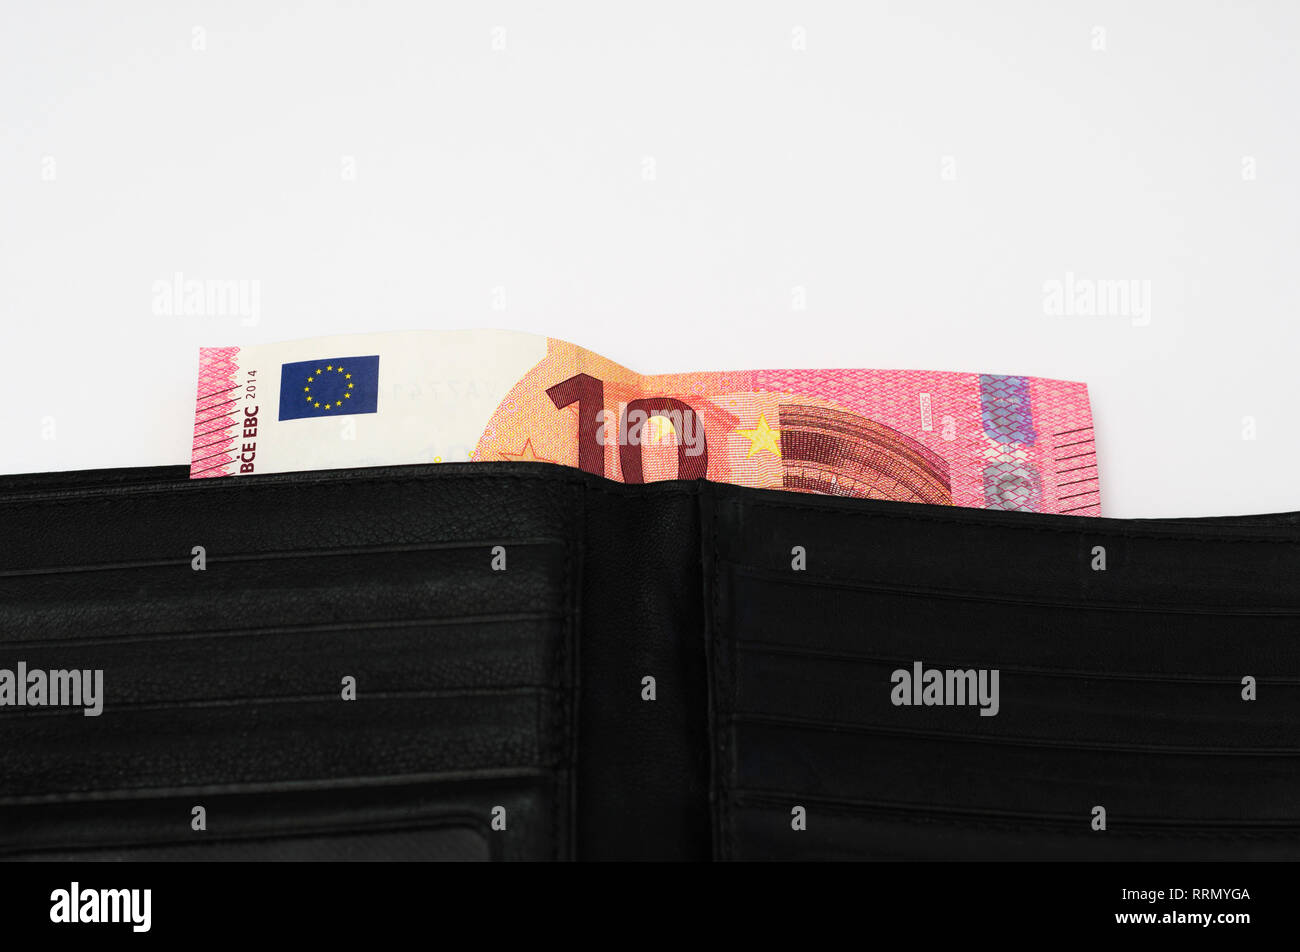 10 euro banknote sticking out of a black leather wallet - Stock Image